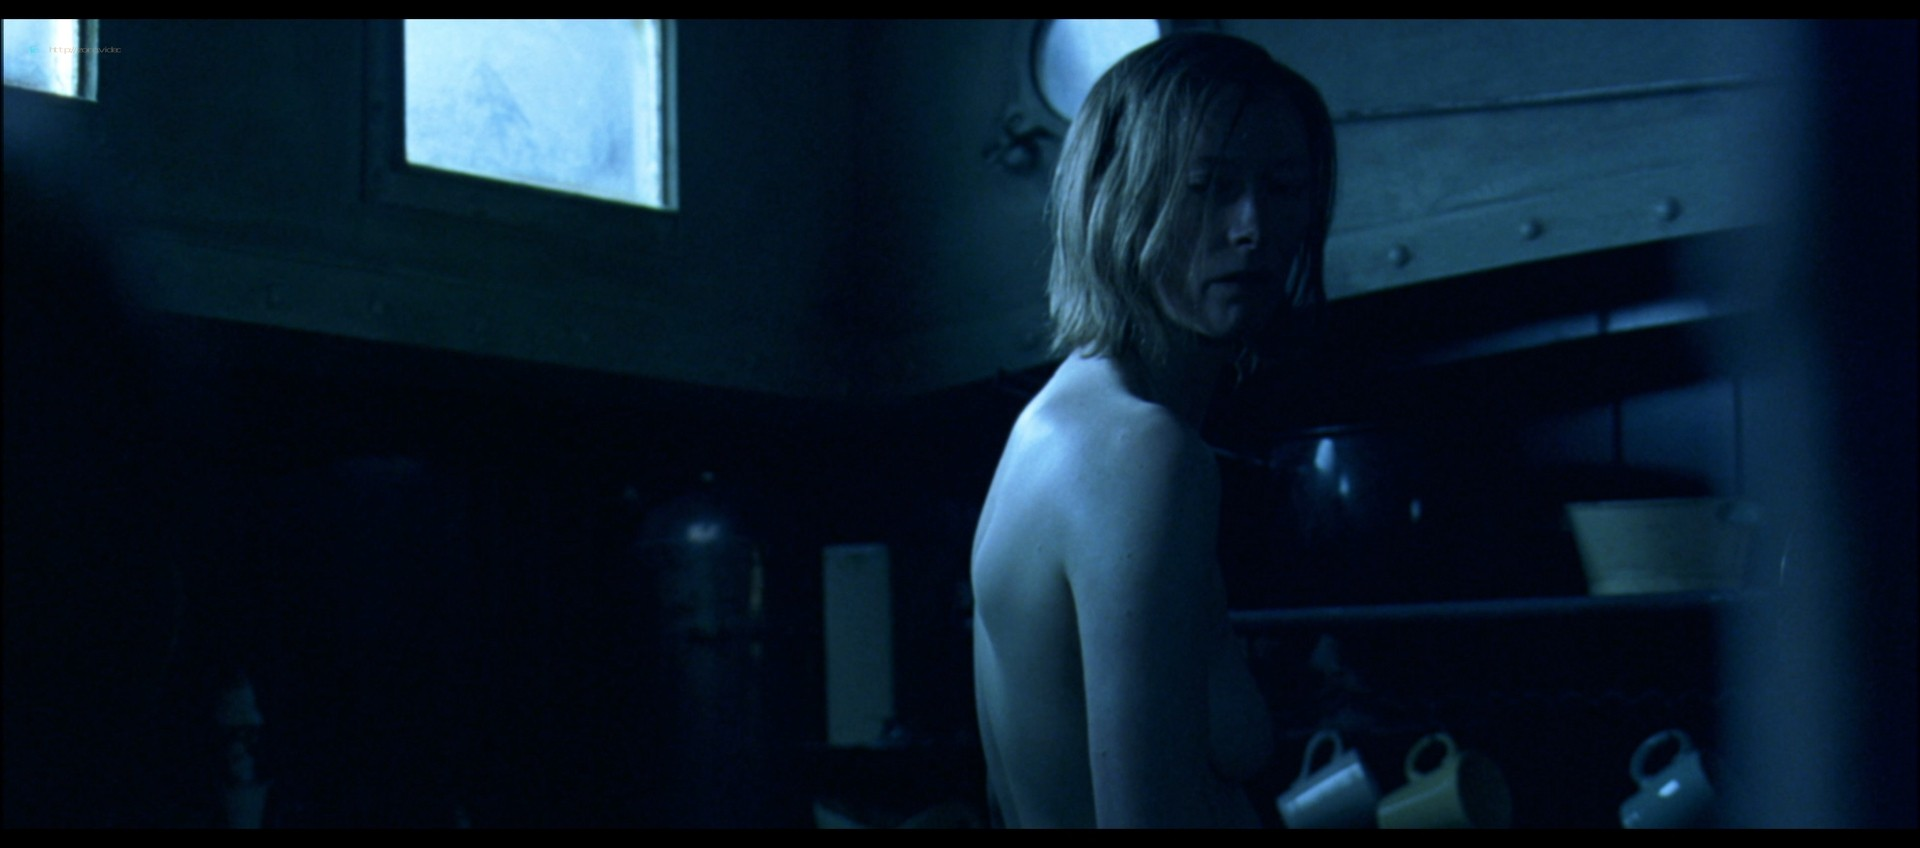 Emily Mortimer nude Tilda Swinton and Pauline Turner nude full frontal - Young Adam (2003) HD 1080p BluRay (11)